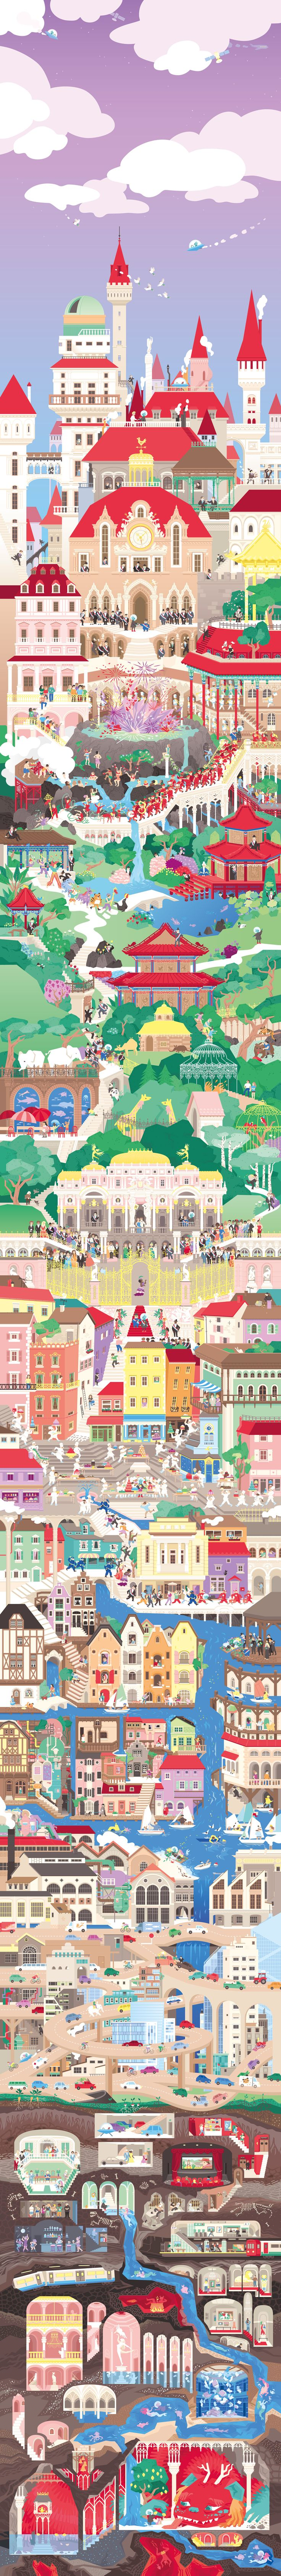 The Megalopolis Children Book by Cléa Dieudonné - http://www.designideas.pics/the-megalopolis-children-book-by-clea-dieudonne/